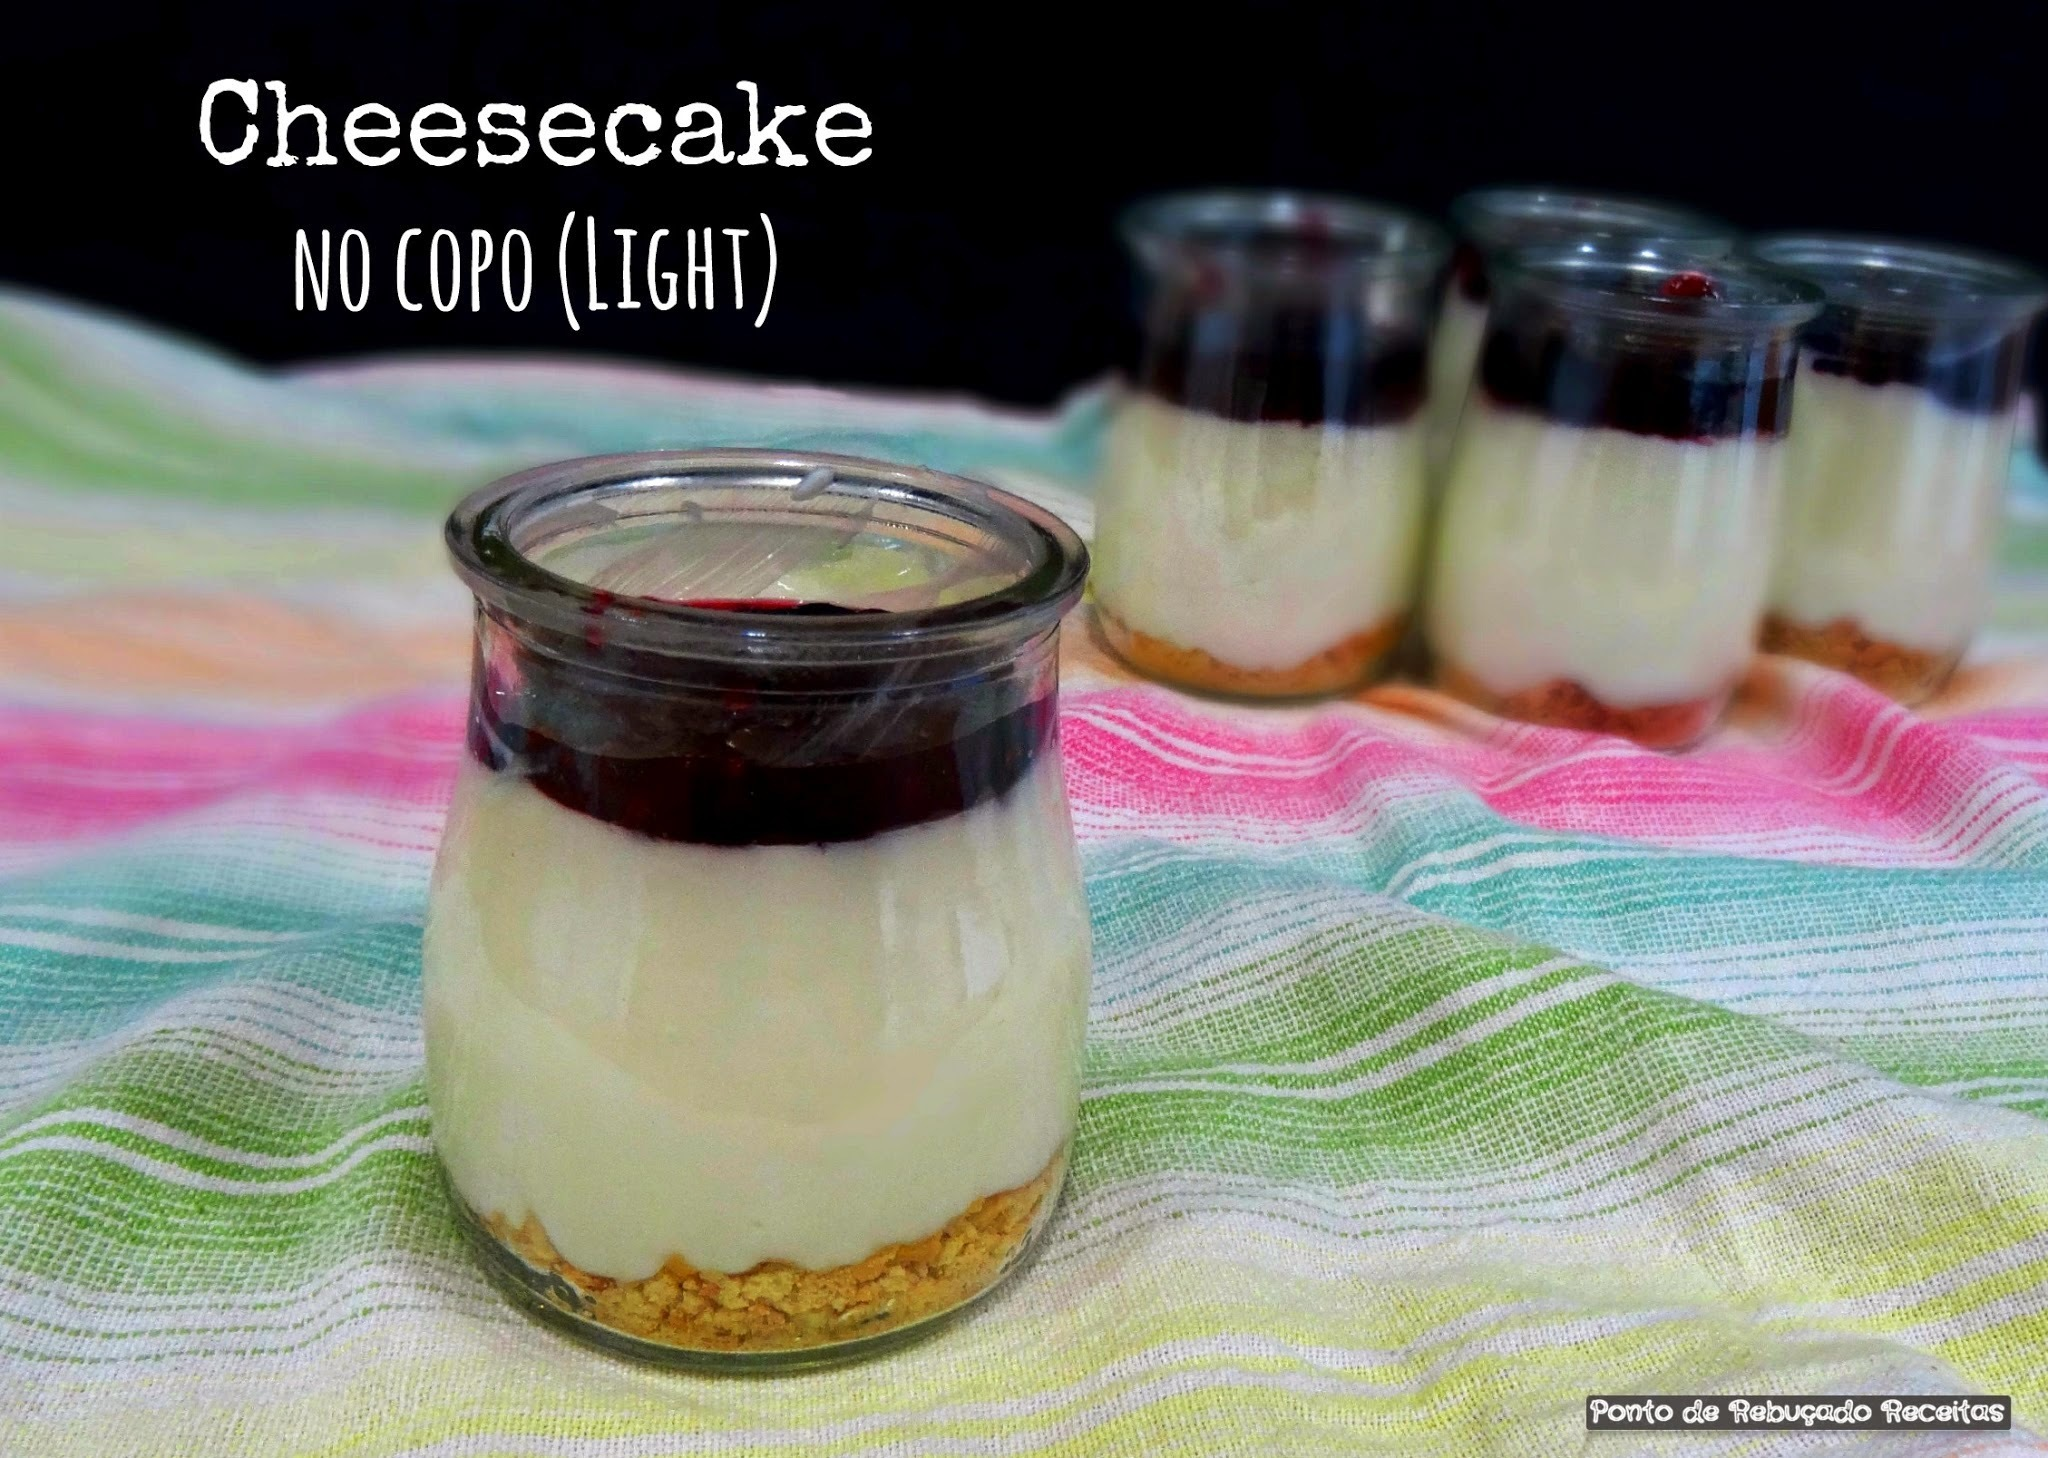 Cheesecake no copo (light)